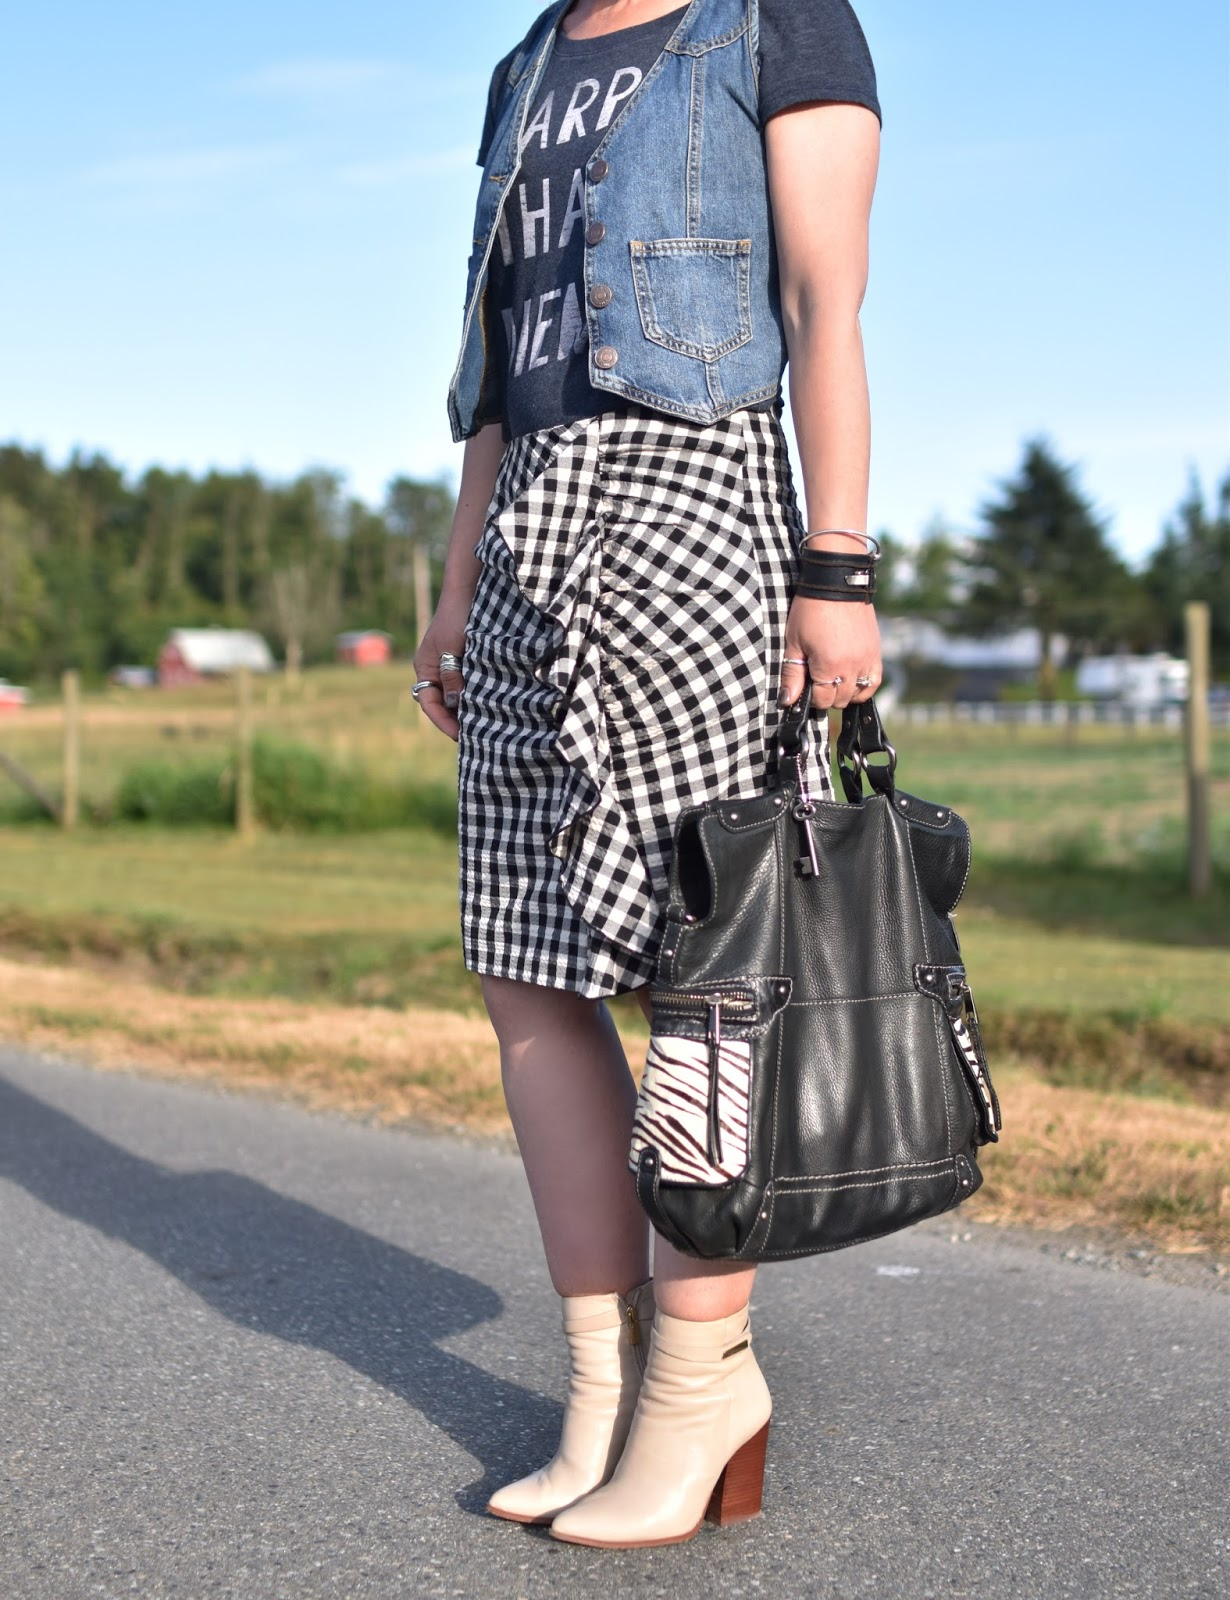 Monika Faulkner personal style inspiration - ruffled gingham skirt, graphic tee, denim vest, ivory booties, Fossil bag